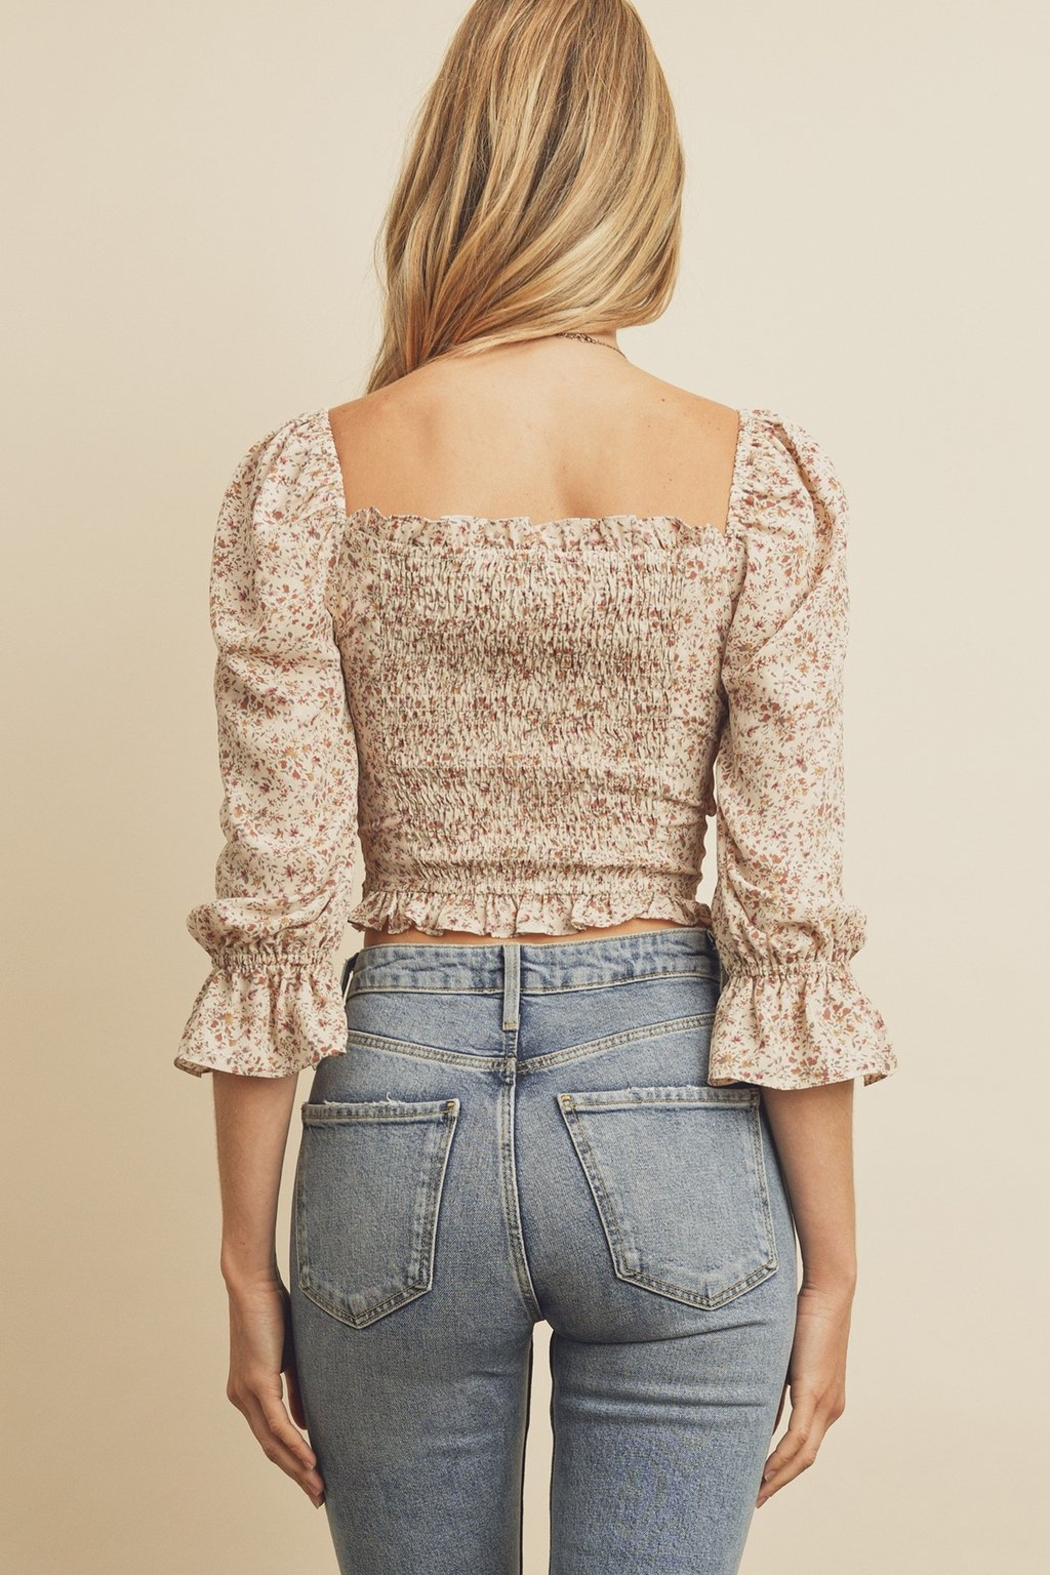 dress forum Ruched Front Blouse - Side Cropped Image